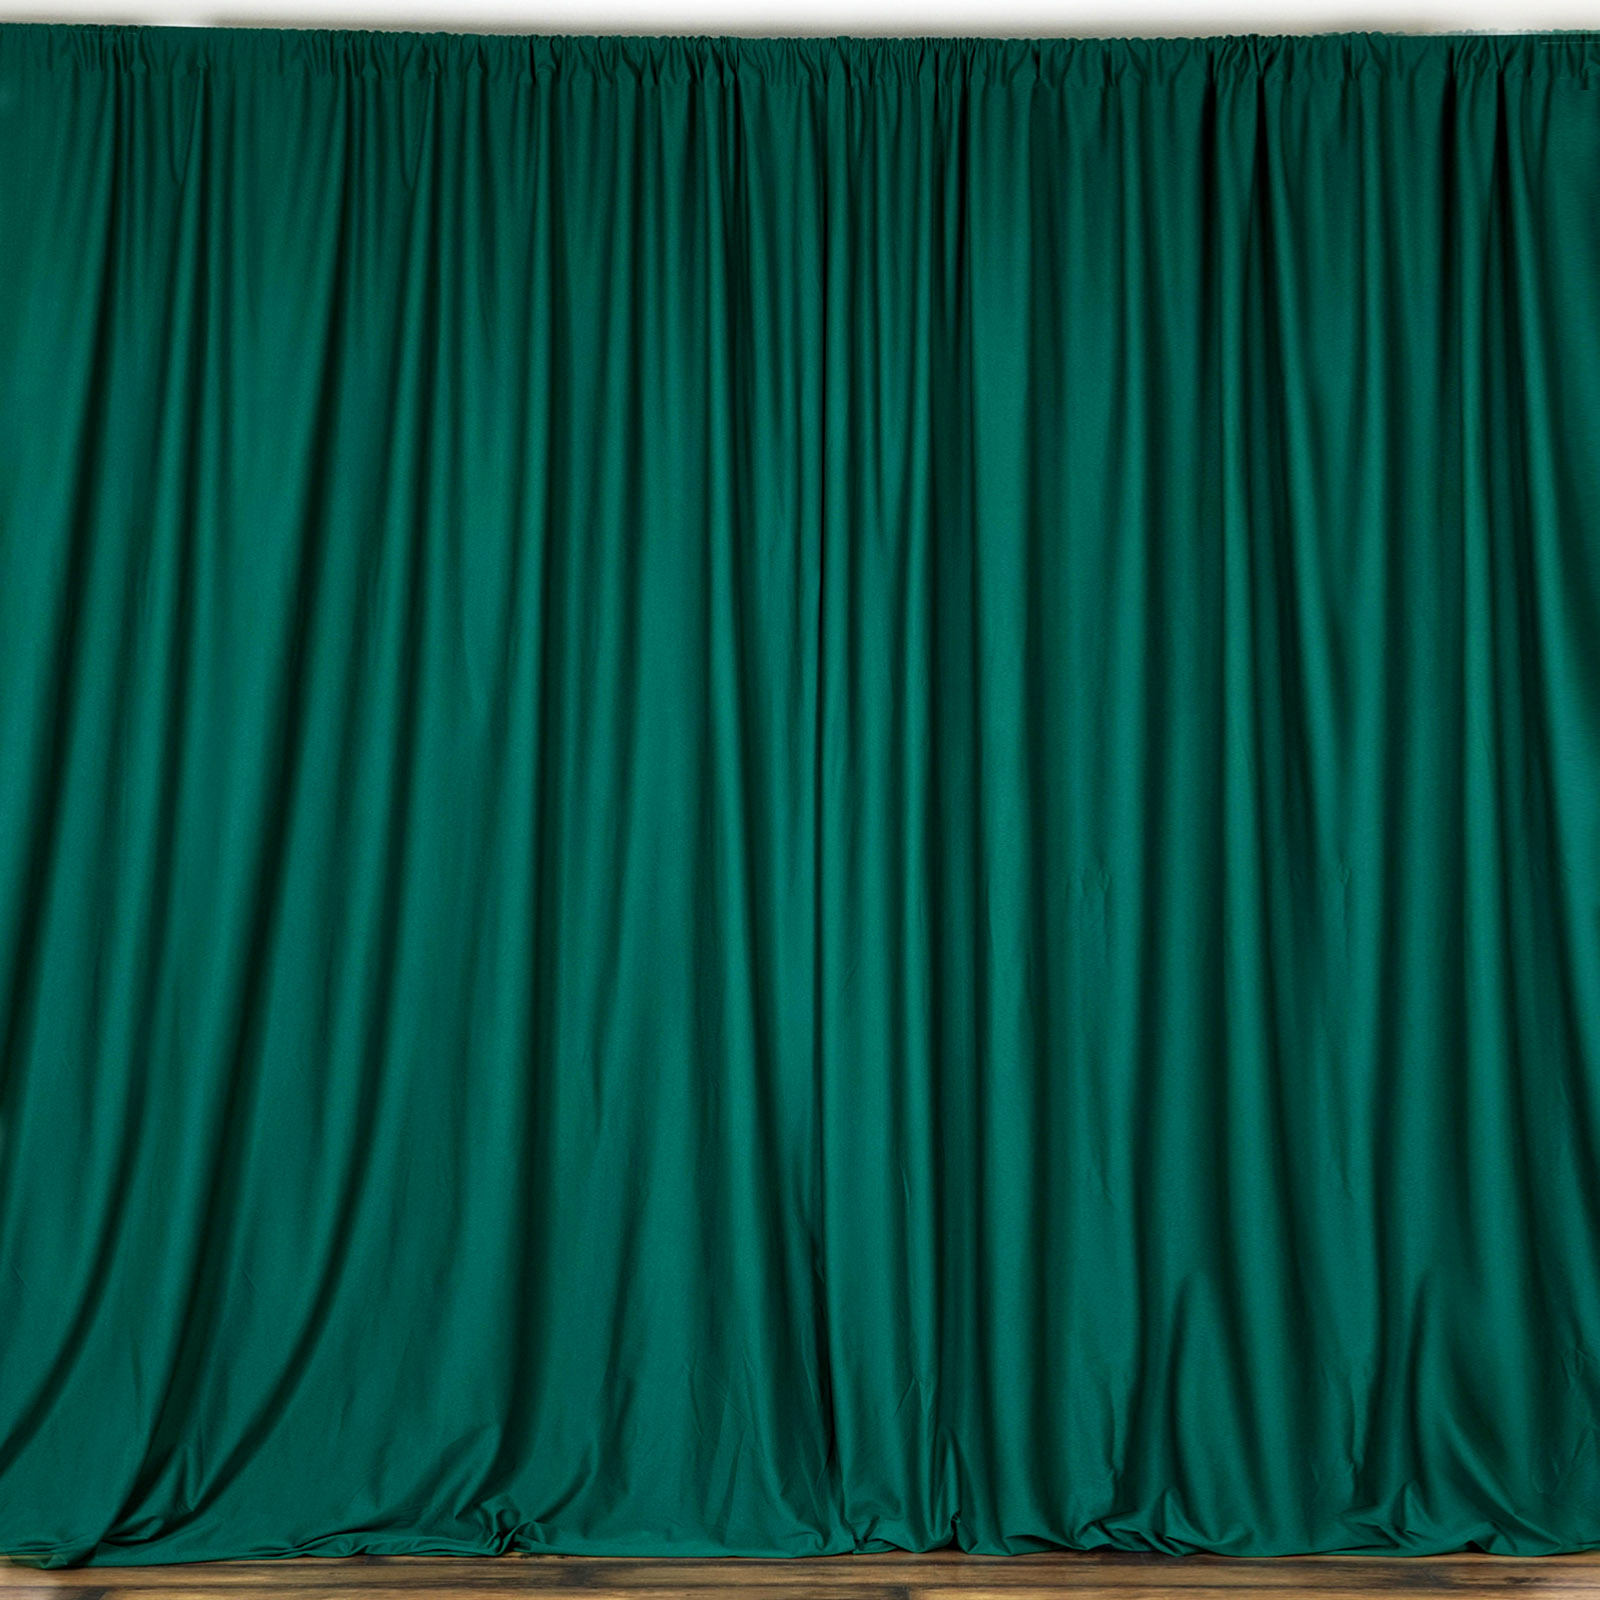 Curtain Polyester Backdrop Drapes Panels with Rod Pocket 10 x 10 Ft Charcoal